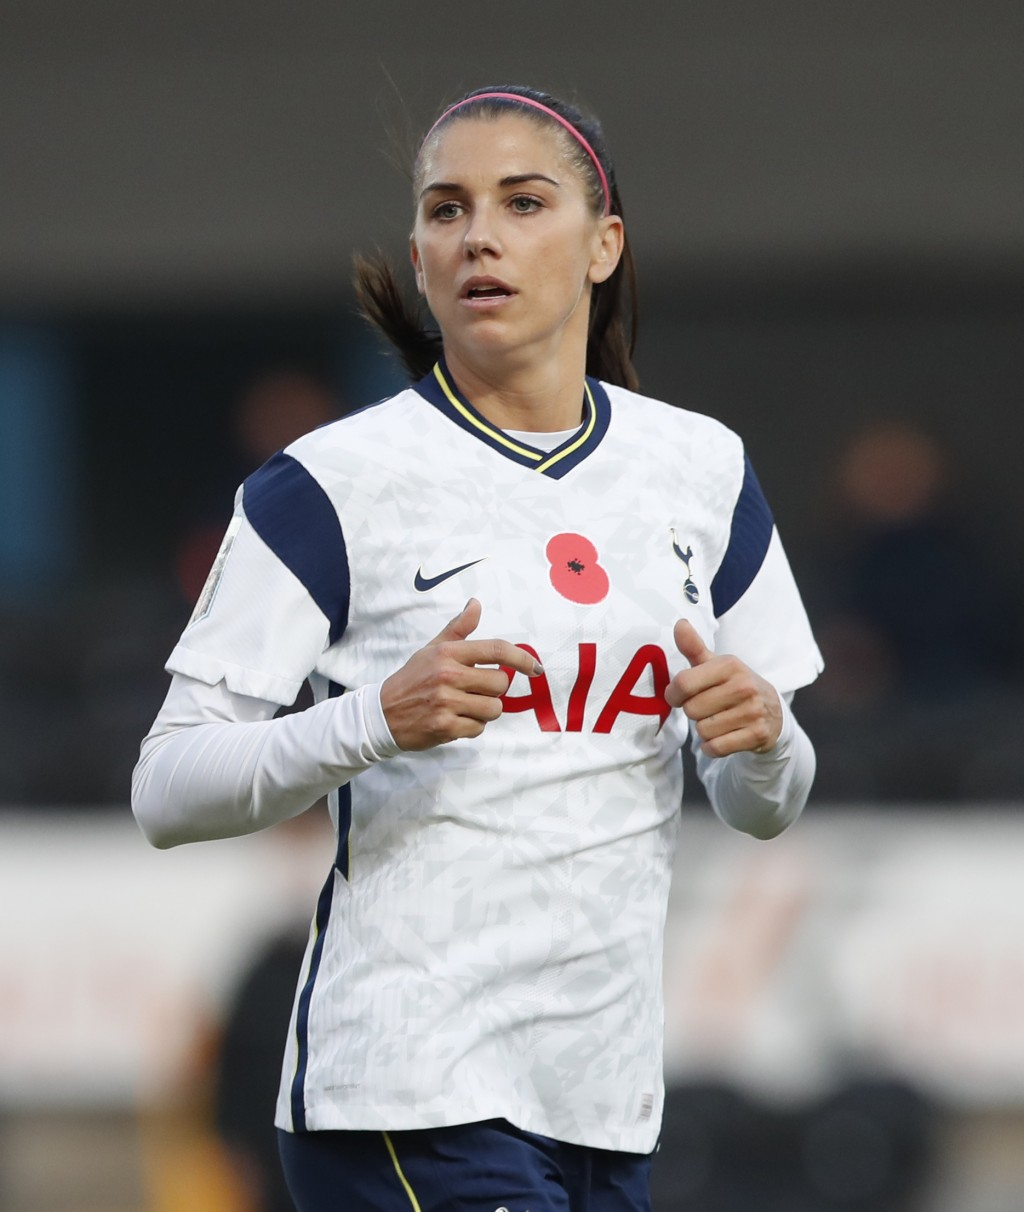 Tottenham Hotspur's Alex Morgan comes on as a substitute during the English Women's Super League soccer match between Tottenham Hotspur and Reading at...